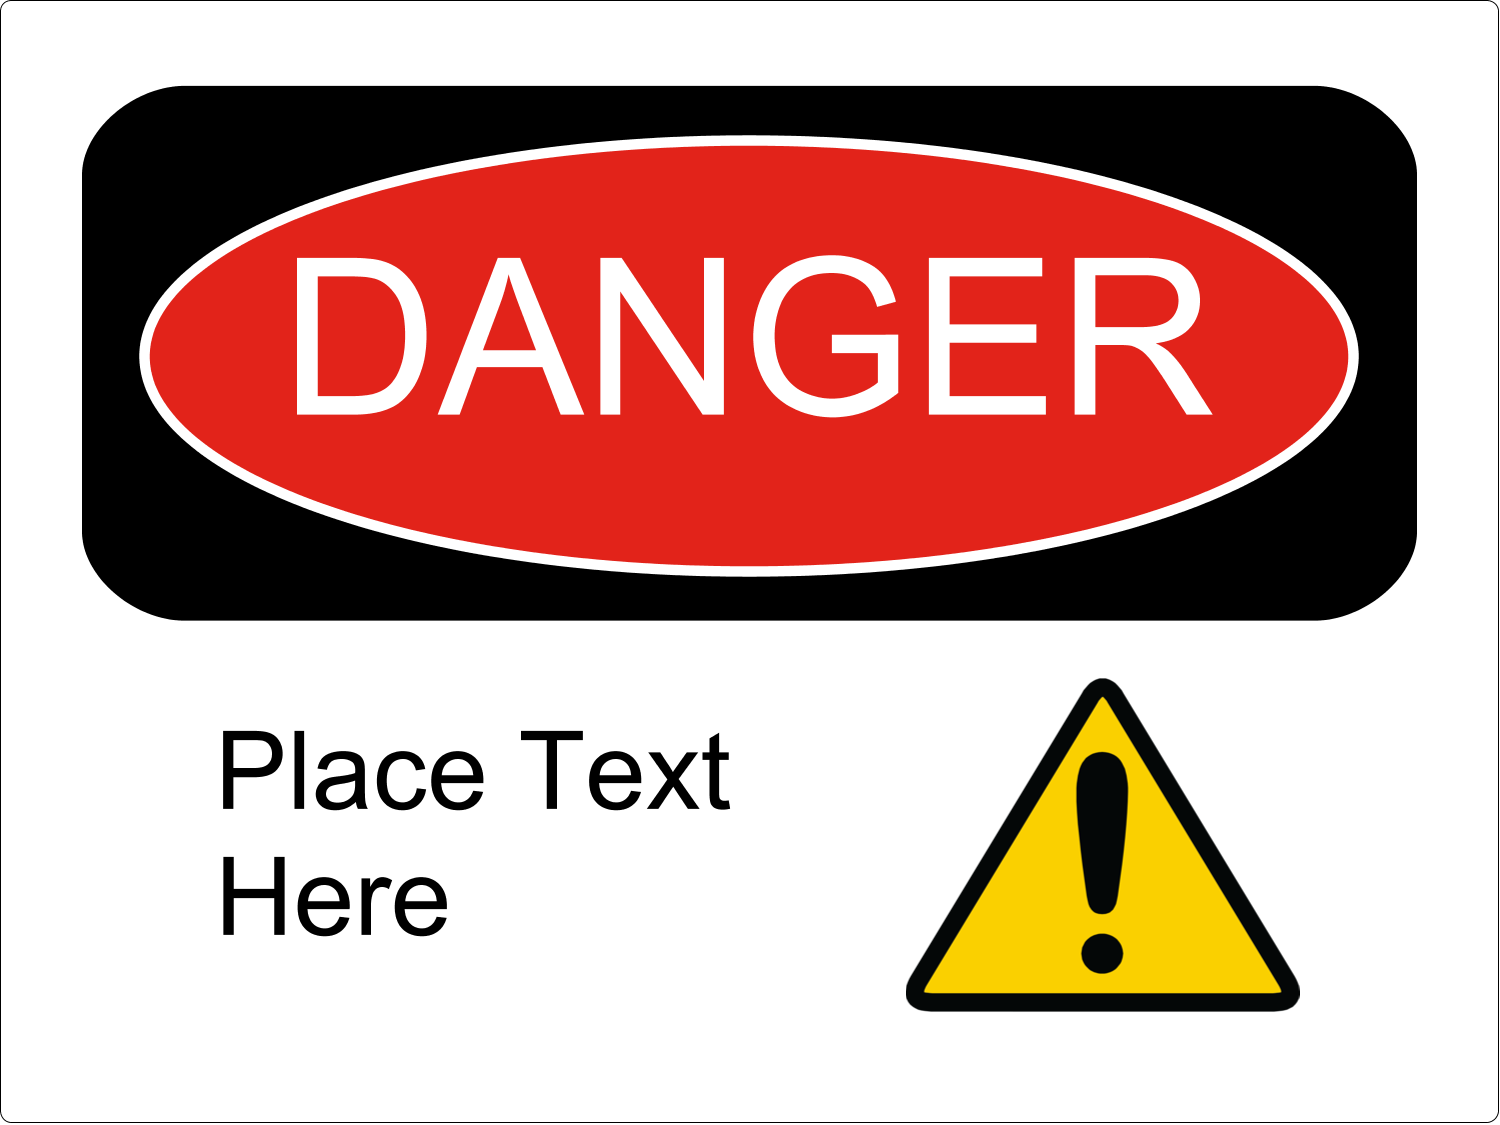 Danger predesigned template for your next project | Avery